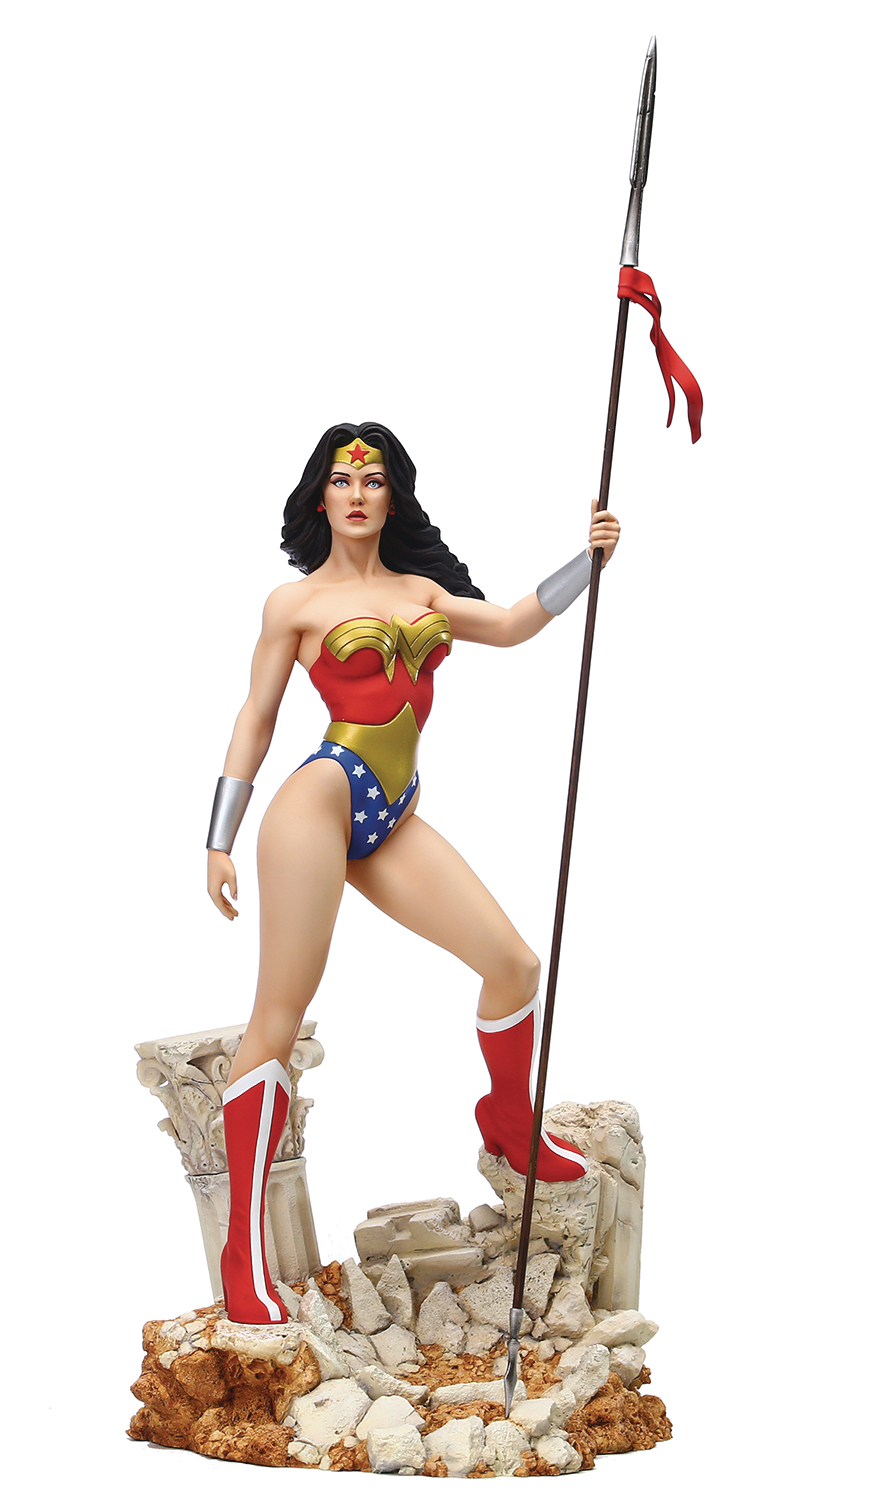 GRAND JESTER STUDIOS DC WONDER WOMAN 1:6 SCALE STATUE